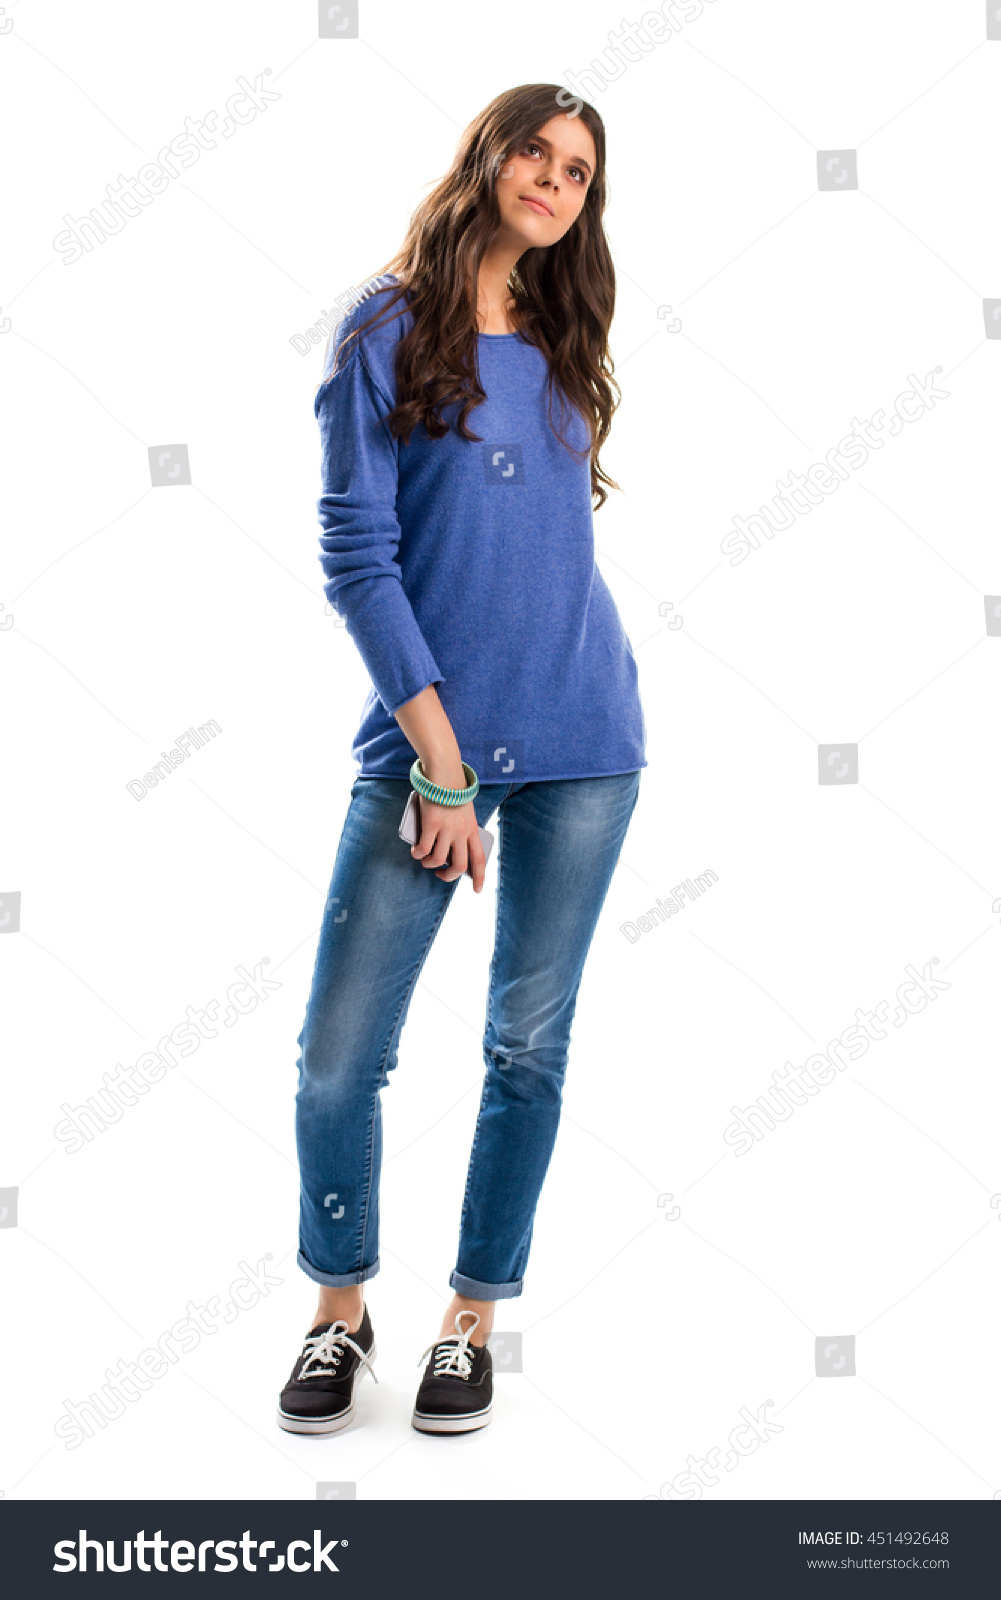 Woman Blue Sweater Young Lady Holding Stock Photo 451492648 ...